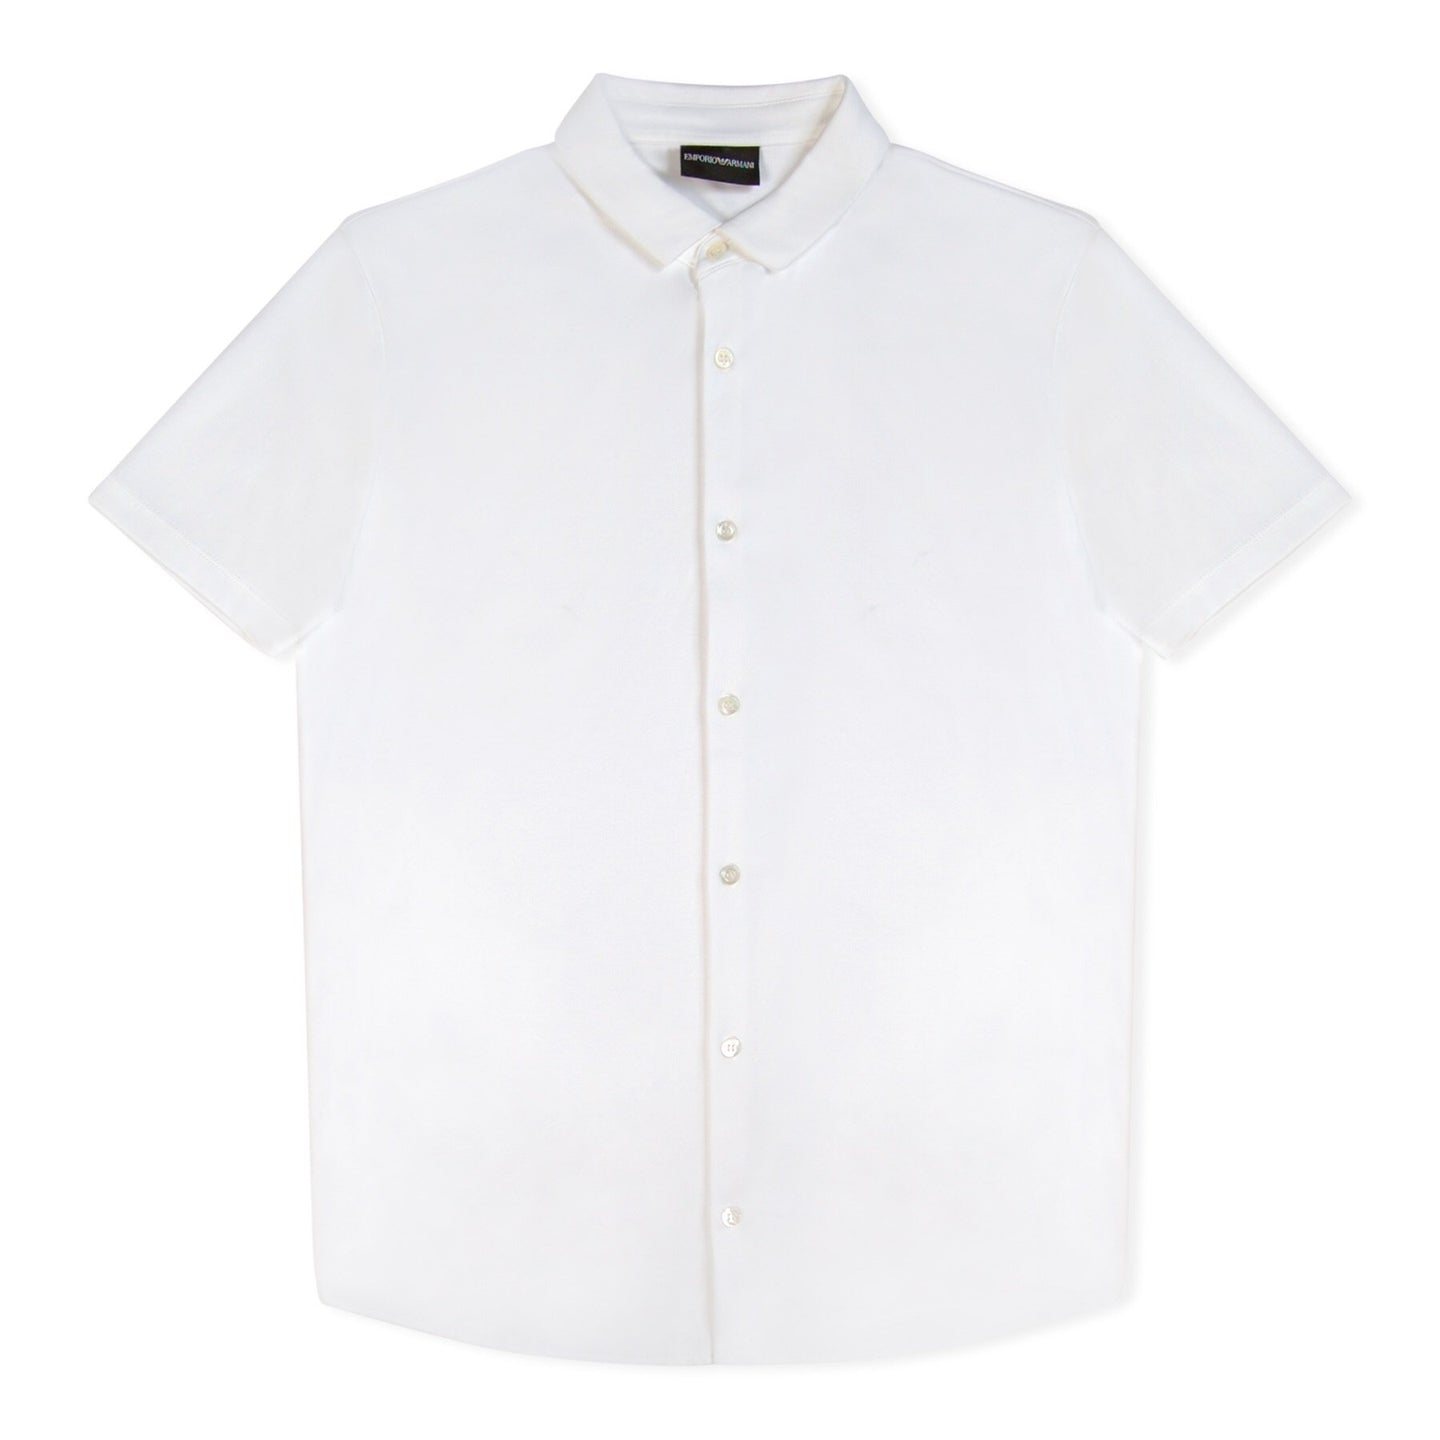 White Armani Short Sleeve Jersey Shirt